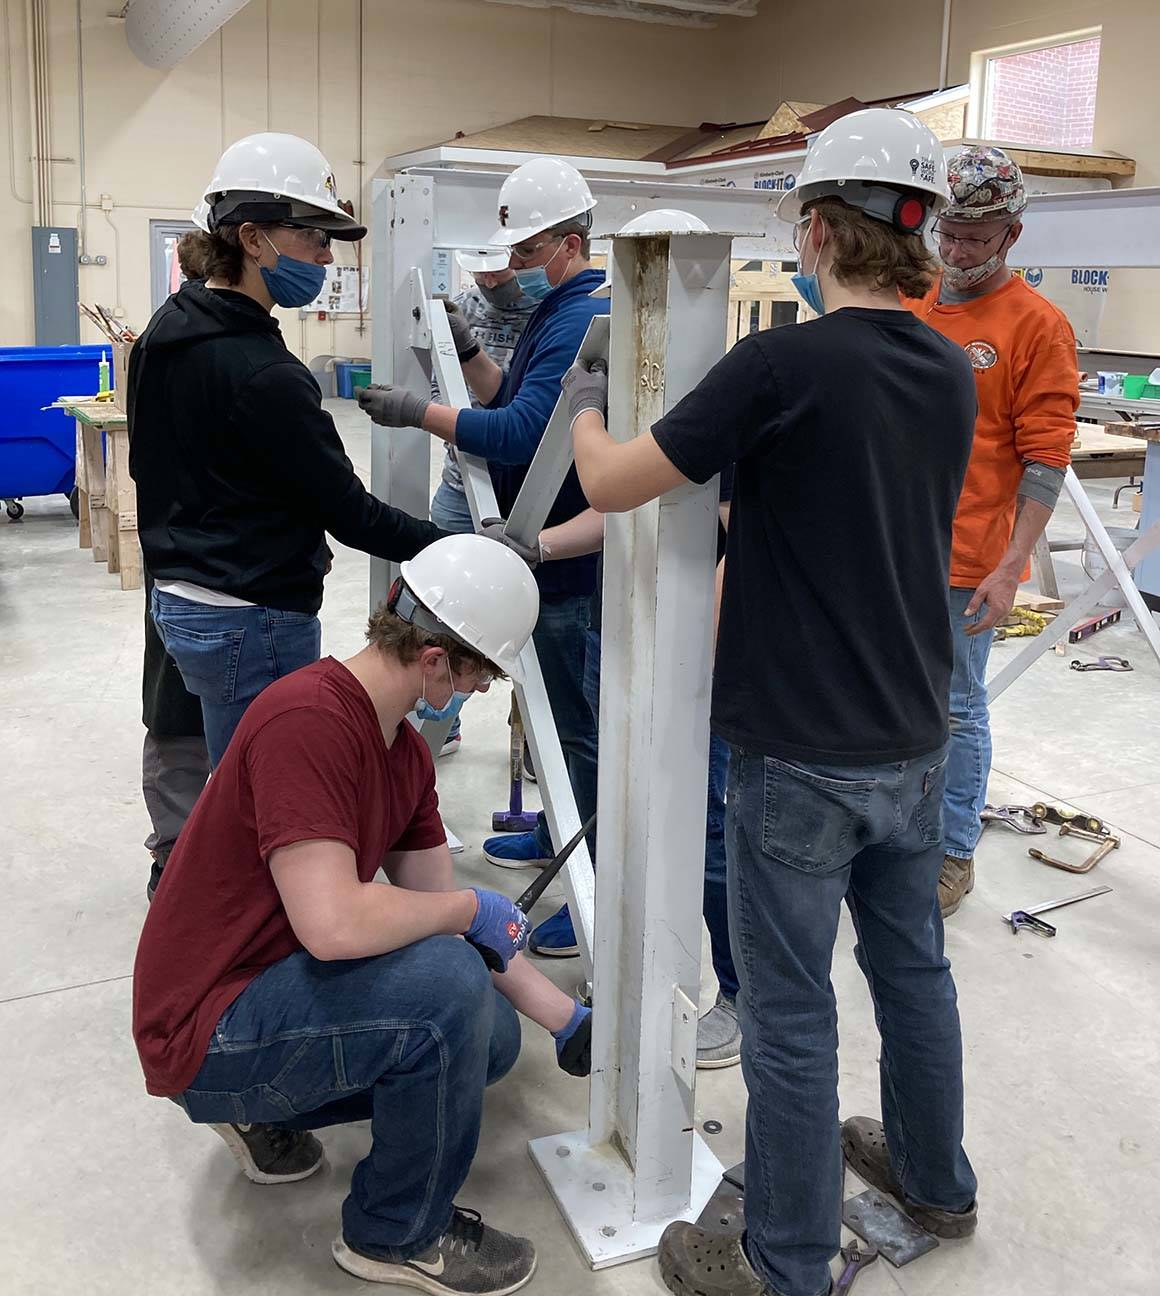 ACE students work on erecting an iron piece